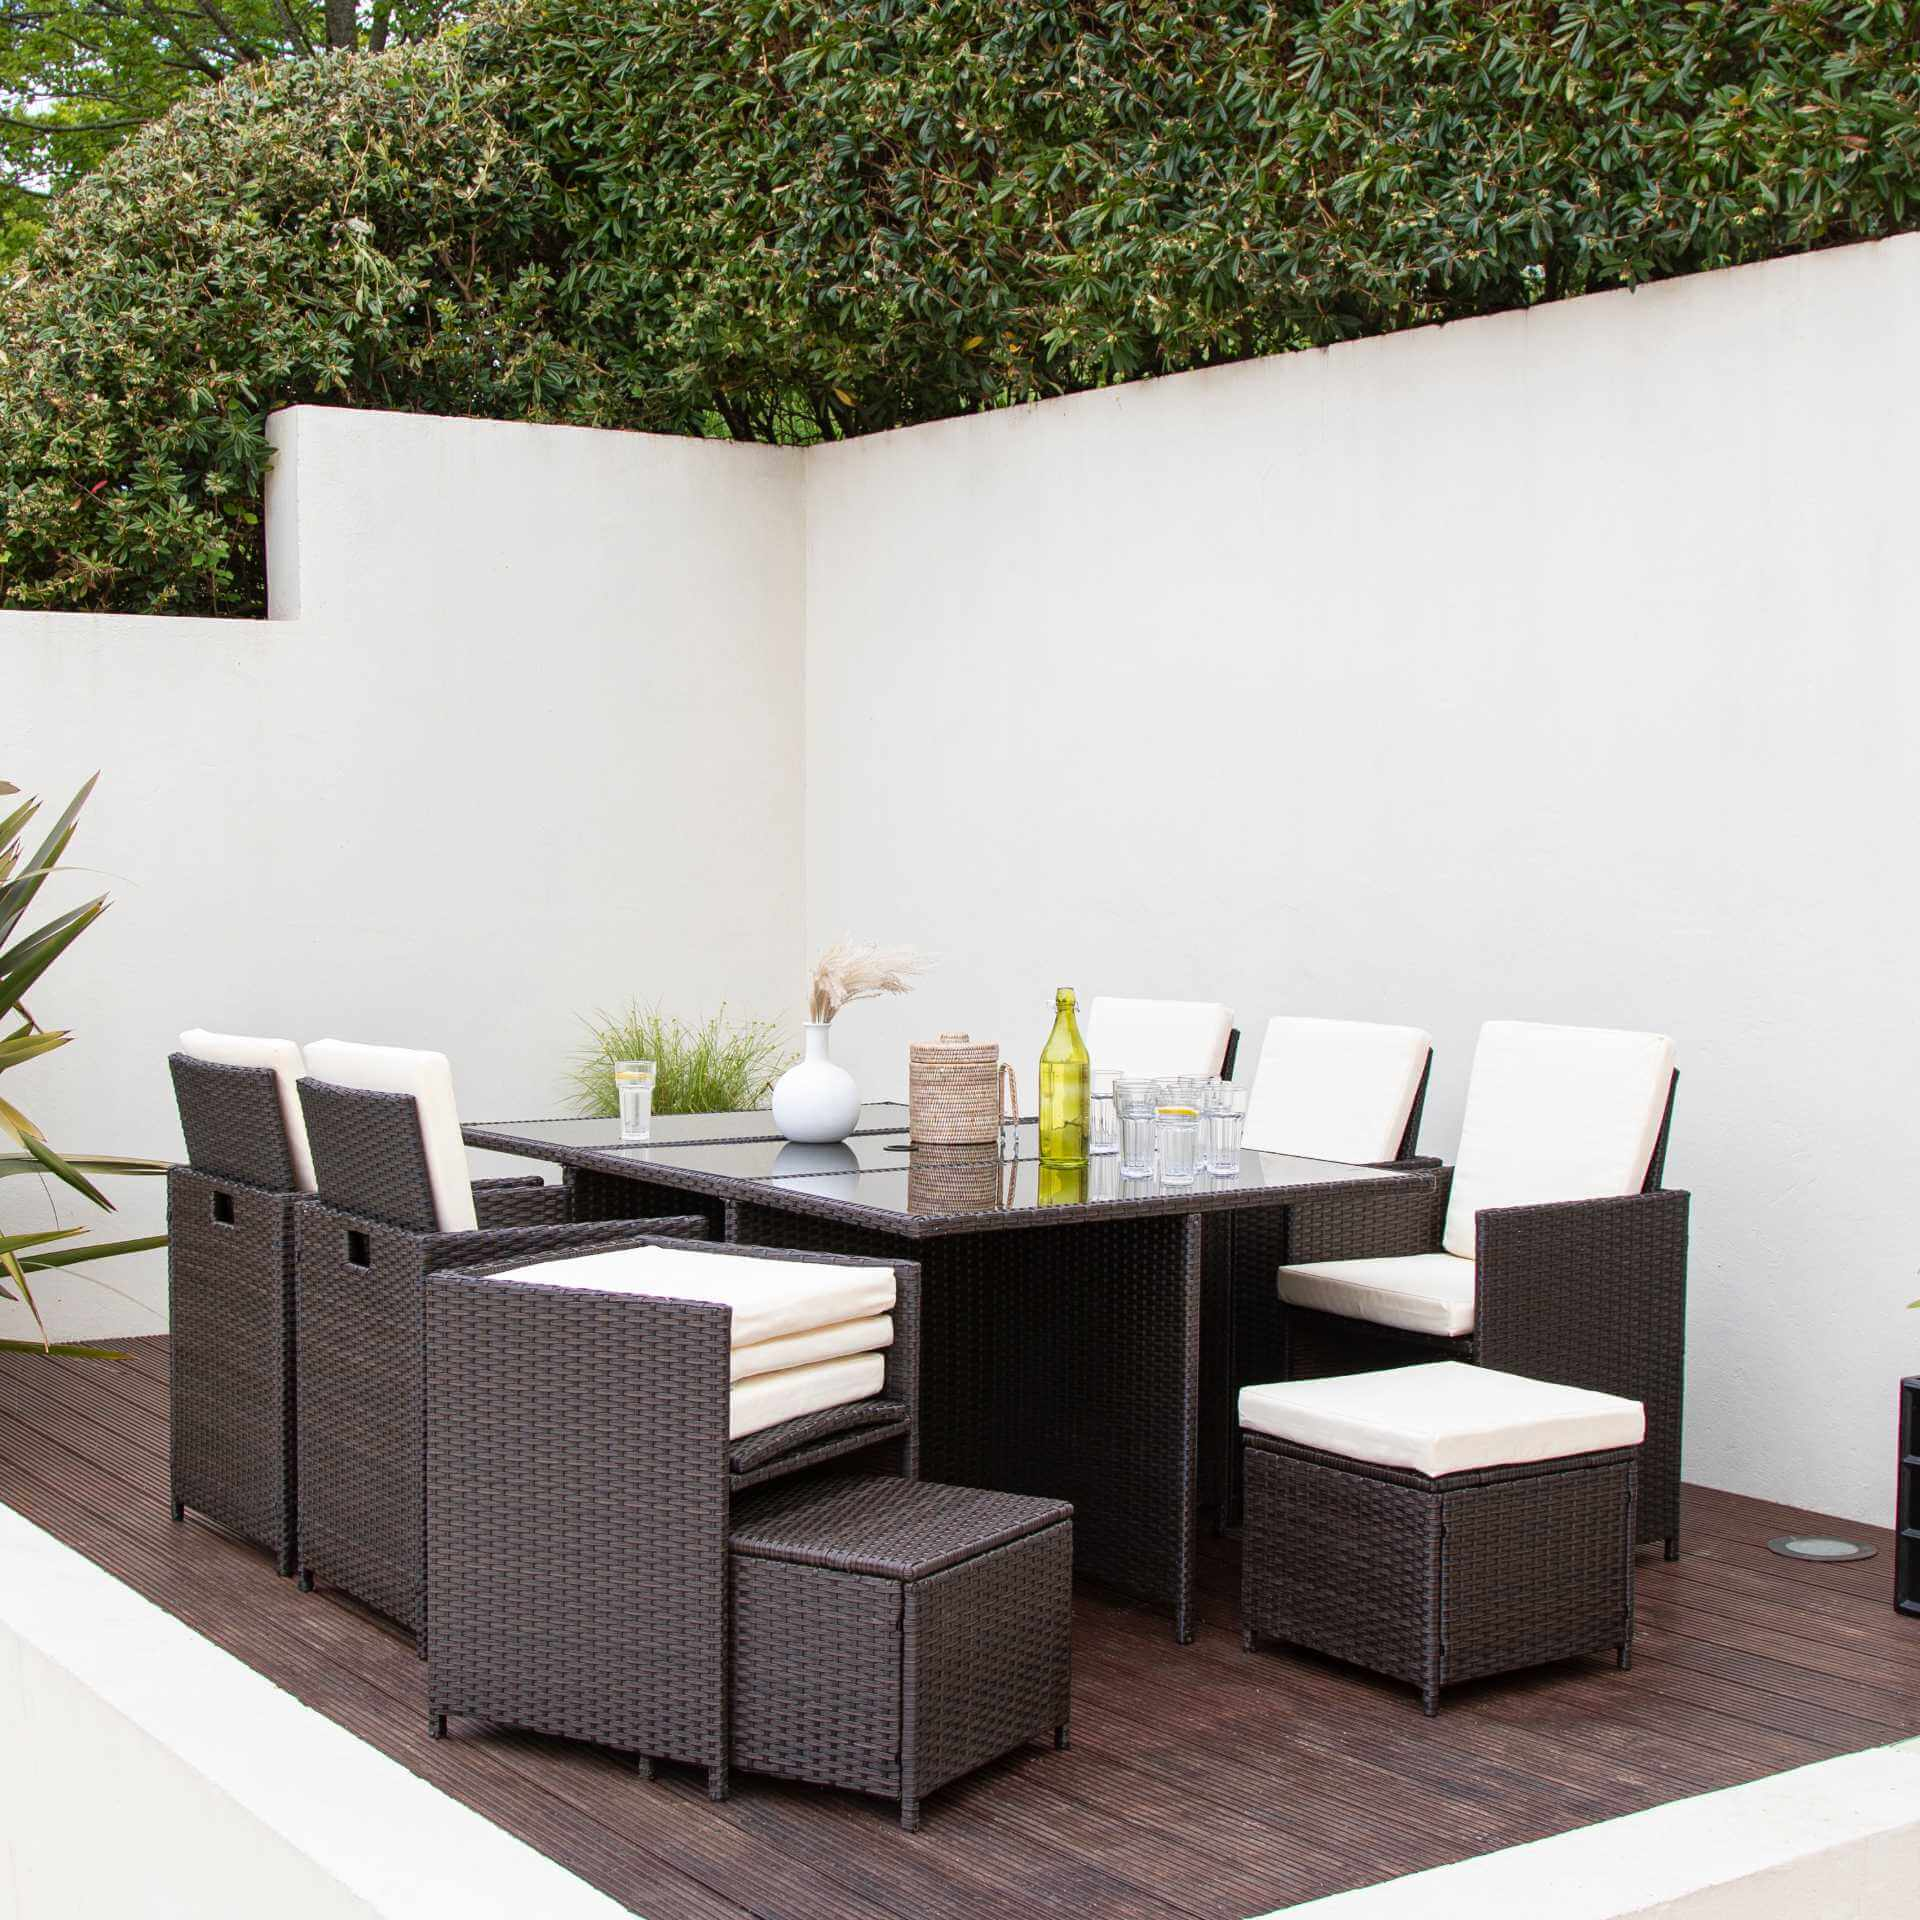 10 Seater Rattan Cube Outdoor Dining Set - Mixed Brown Weave